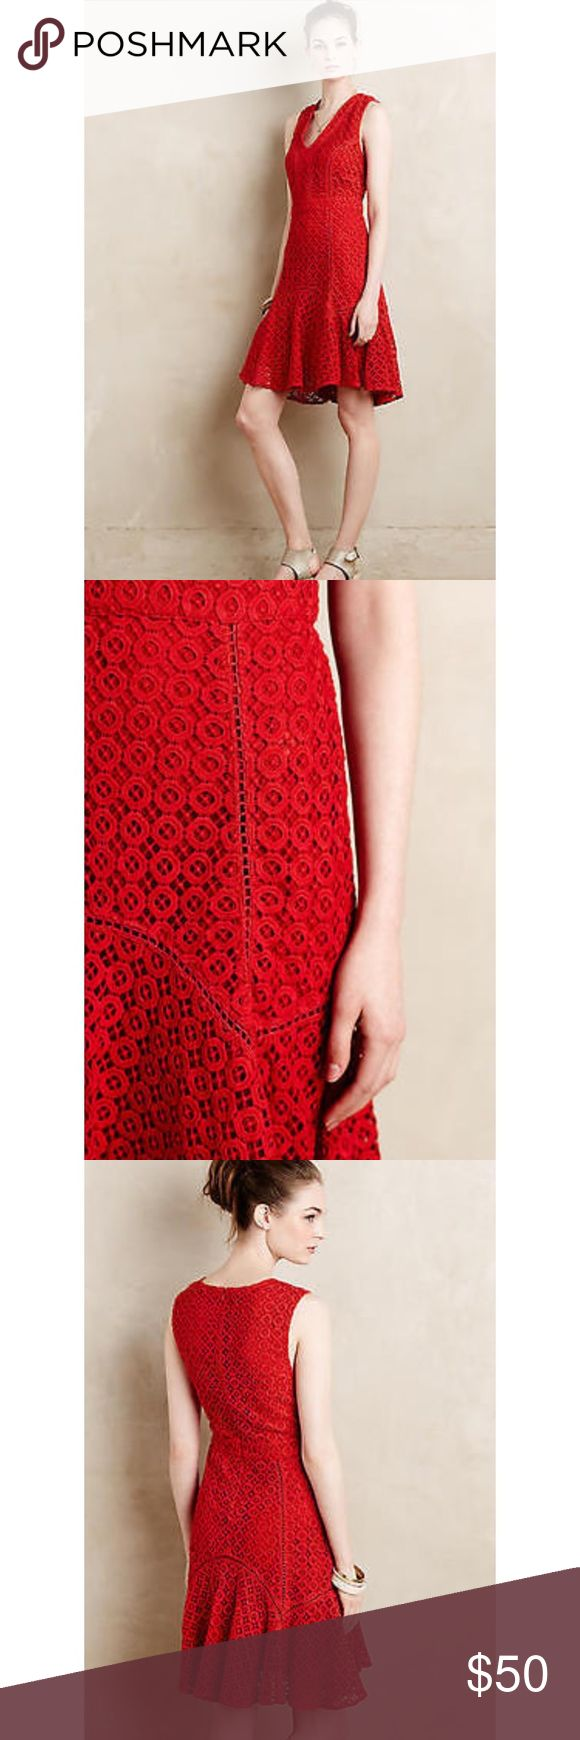 San & Soni Dress from Anthropologie Red Doily designt dress Wore it once to a wedding. It is red but I would say the dress isn't as red as it appears in the photos with the middle. The actual color is more of a red/orange or a brighter red, no a deep red. Anthropologie Dresses Midi